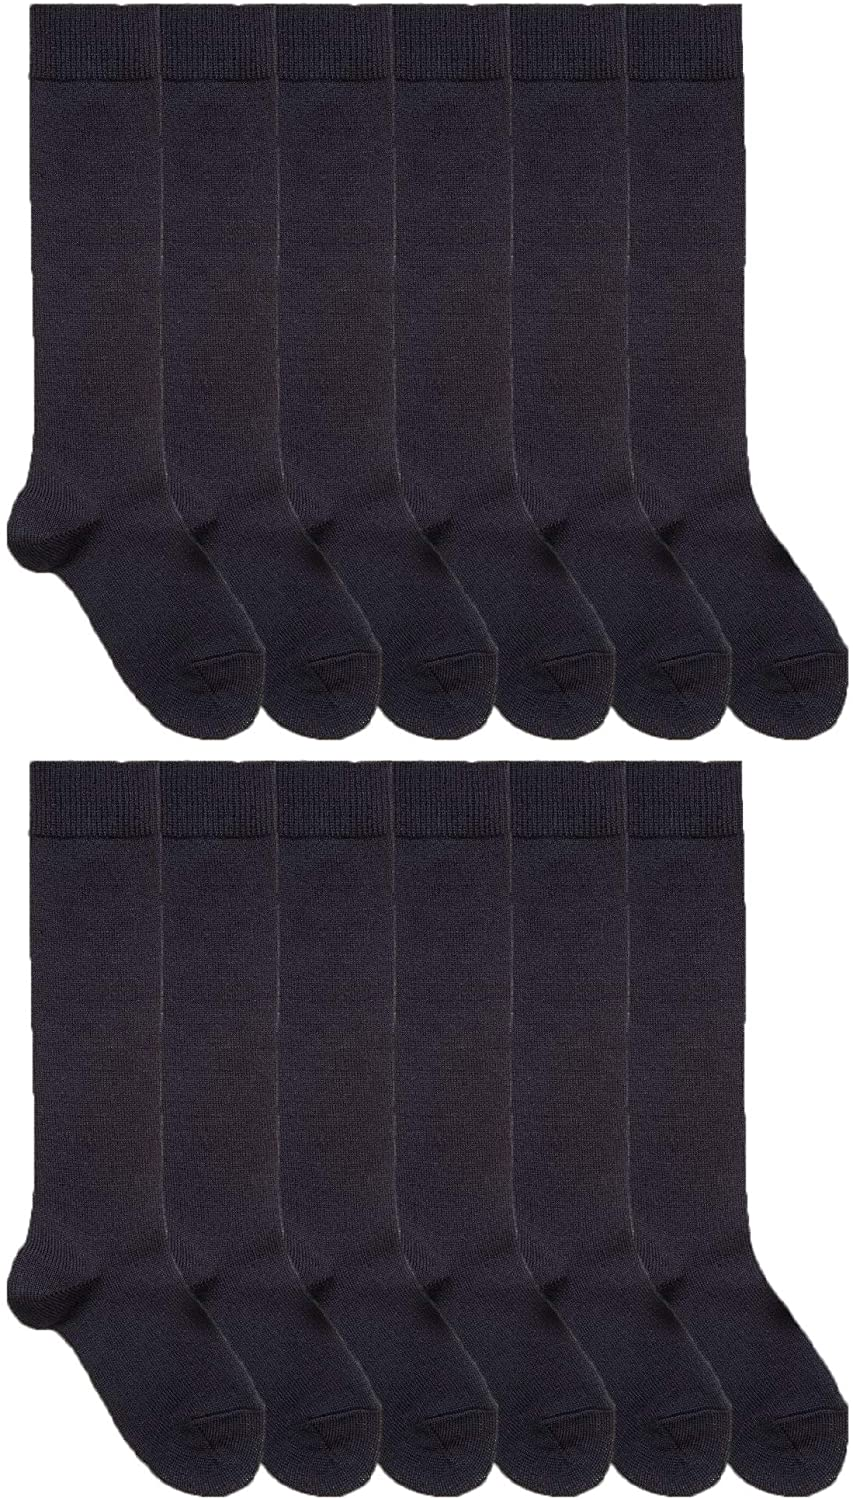 Yacht & Smith 12 Pairs of Cotton Long Knee High Socks for Women, Knee High Socks